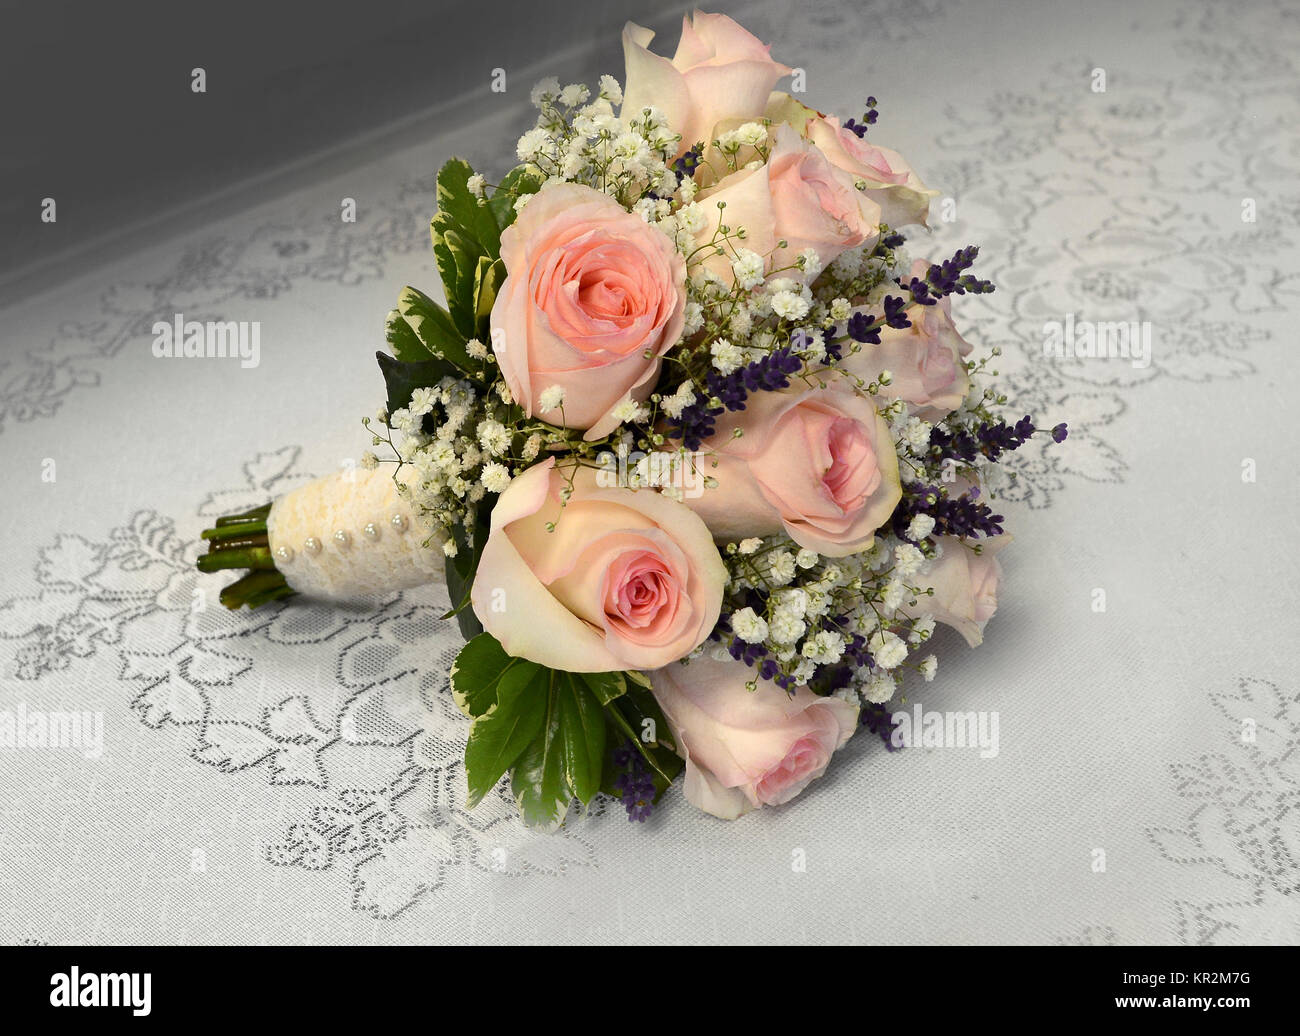 Photo Of A Small Romantic Nosegay Bridal Bouquet With Pink Roses Stock Photo Alamy